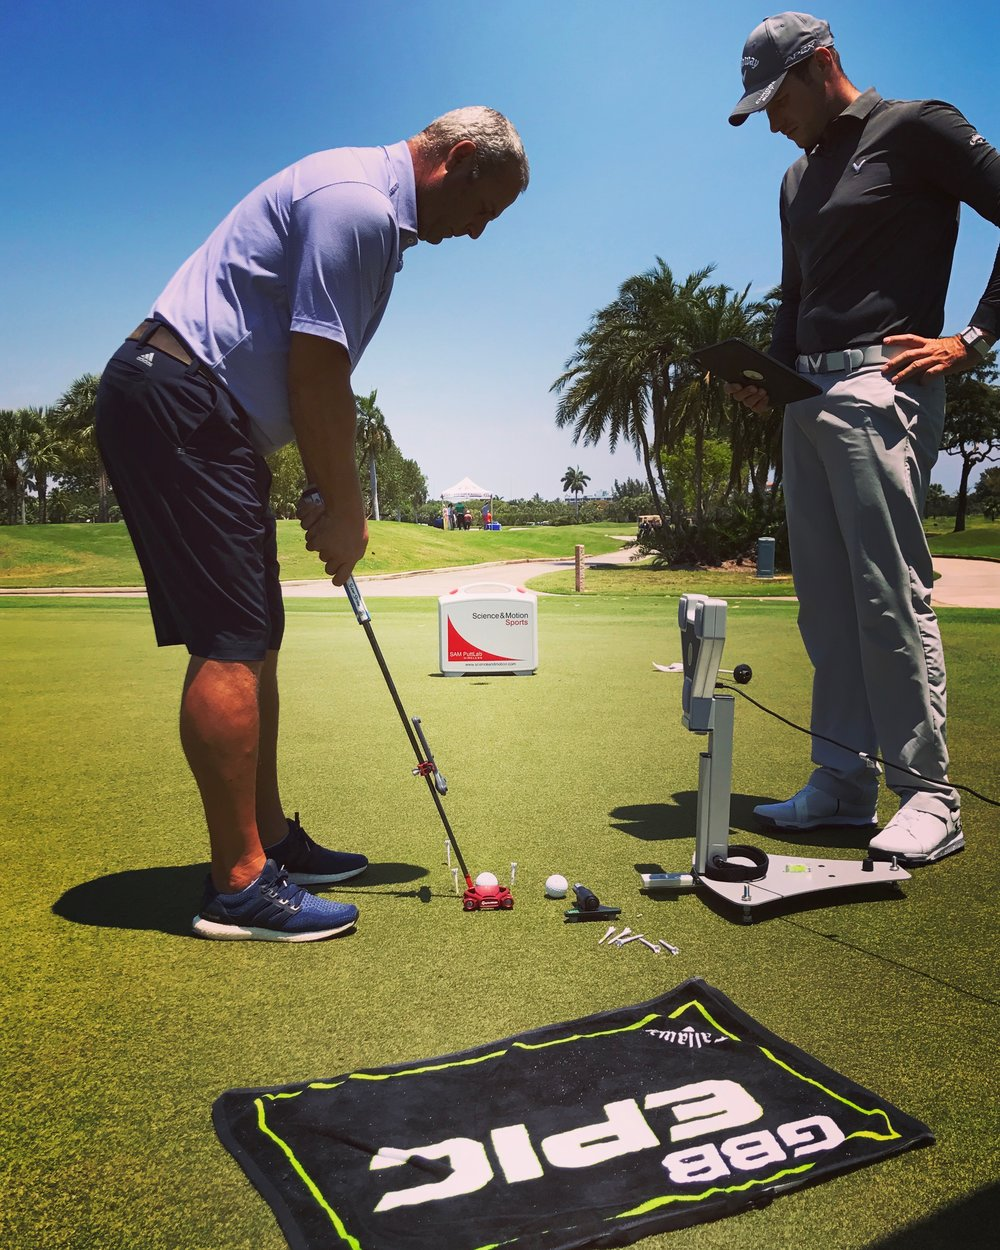 3 DAY PRO SESSION EXPERIENCE - This program is designed for the golfer looking for multiple days of instruction while still getting lots of on-course play everyday. Program consists of 12 hours with your instructor- 3 hours on instruction each day from 9-12-Lunch with your instructor-Play 9 holes after lunch on your ownFor an additional cost, you can continue playing the full 18 and even have your instructor join you for on course playing lesson for the 9 or 18 holesFully customization program: Pick any available instructor and pick any days that work for your schedule.Certified1 Person $ 1,6002 People $ 1,400 per person3 People $ 1,117 per personMaster1 Person $ 2,0002 People $ 1,700 per person3 People $ 1,400 per personLead Master1 Person $ 2,4002 People $ 2,050 per person3 People $ 1,667 per person